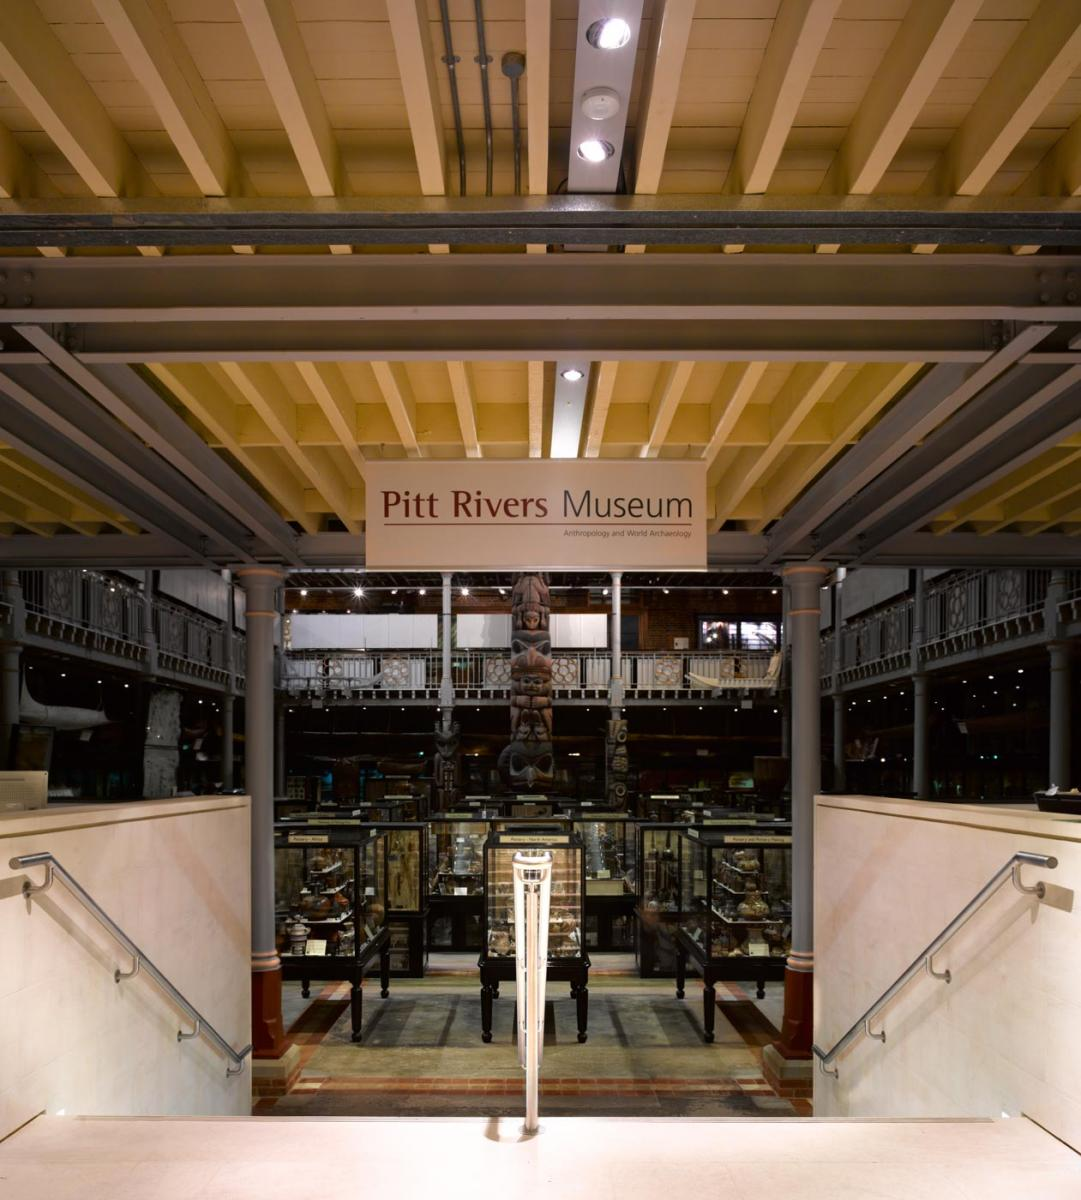 Pitt Rivers Museum Main Entrance and Refurbishment - Stair view